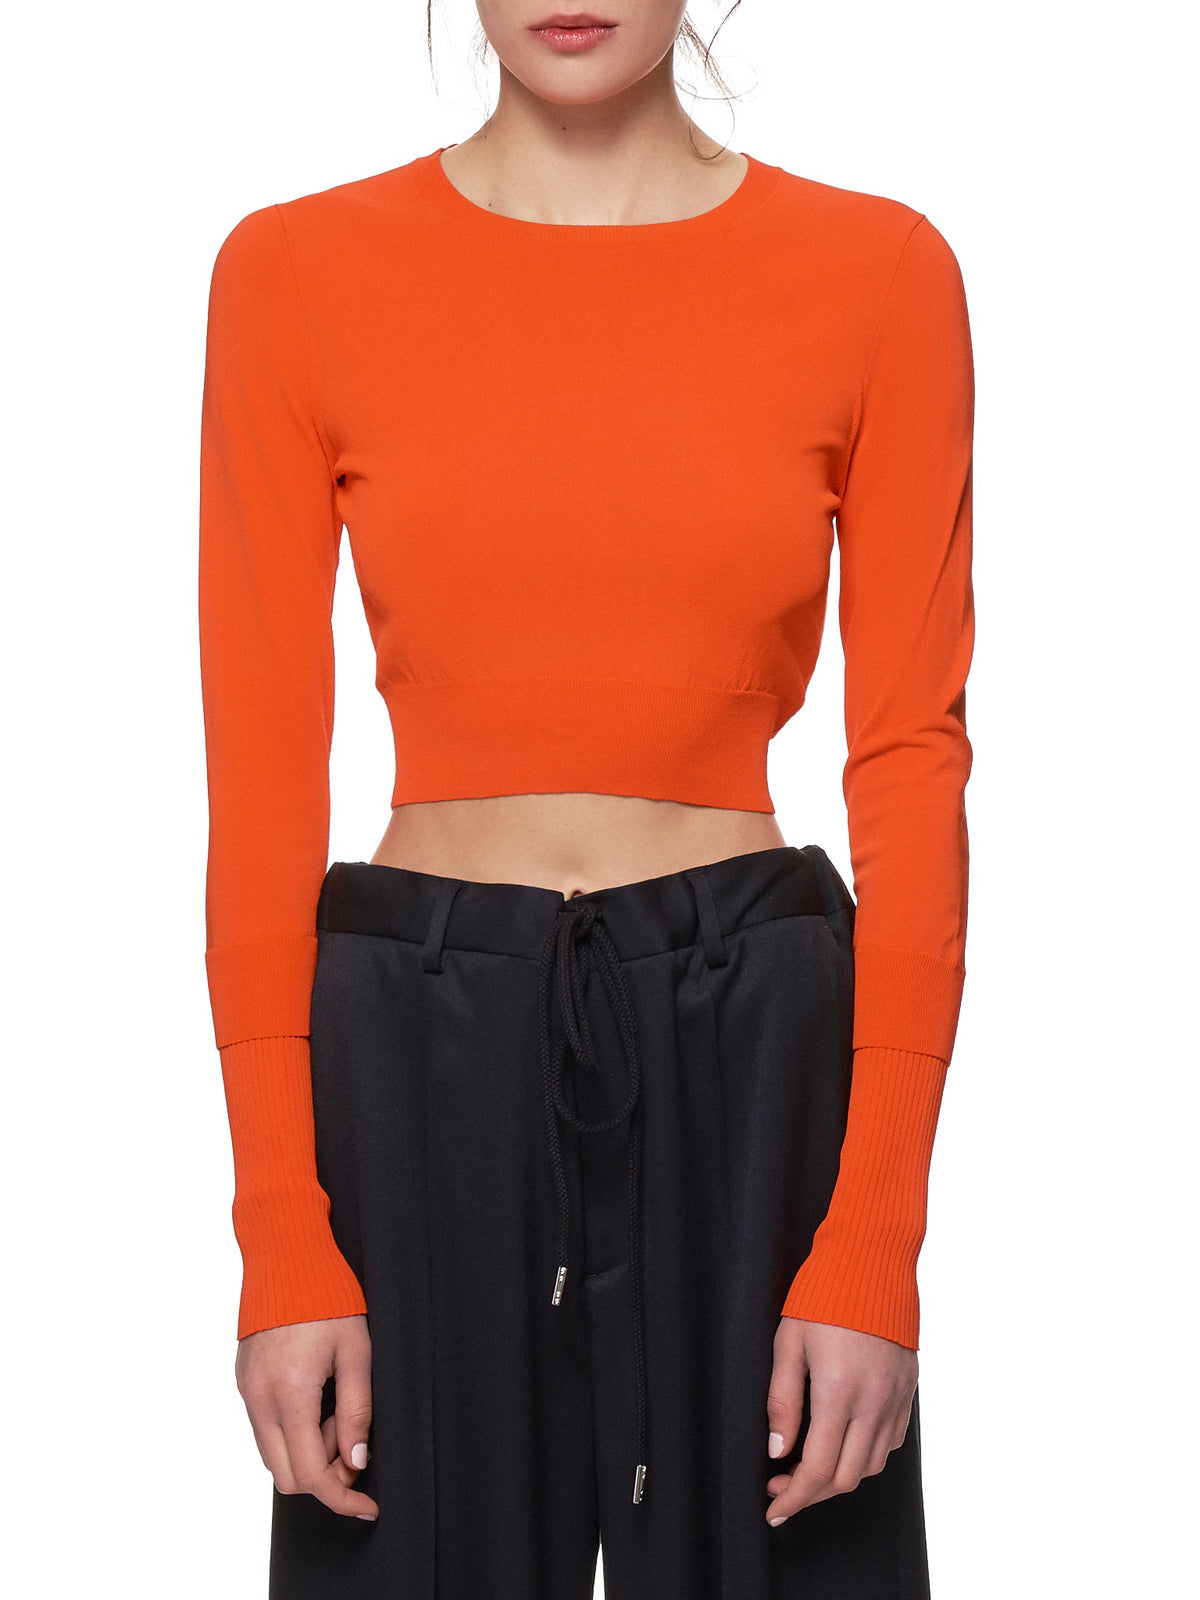 Cropped Sweater (11CY8001-BLOOD-ORANGE)